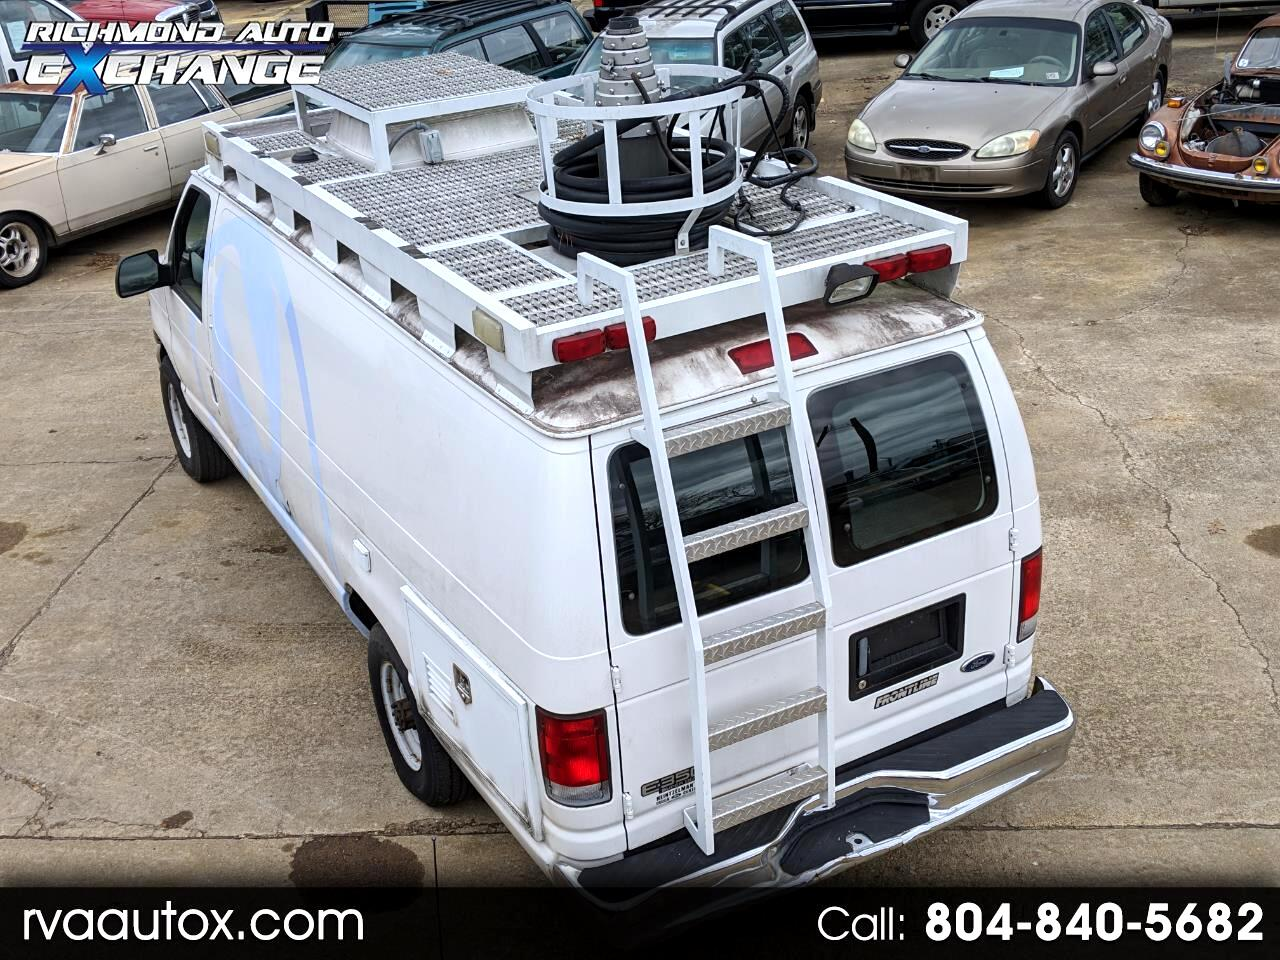 1999 Ford Econoline E350 Super Duty Extended